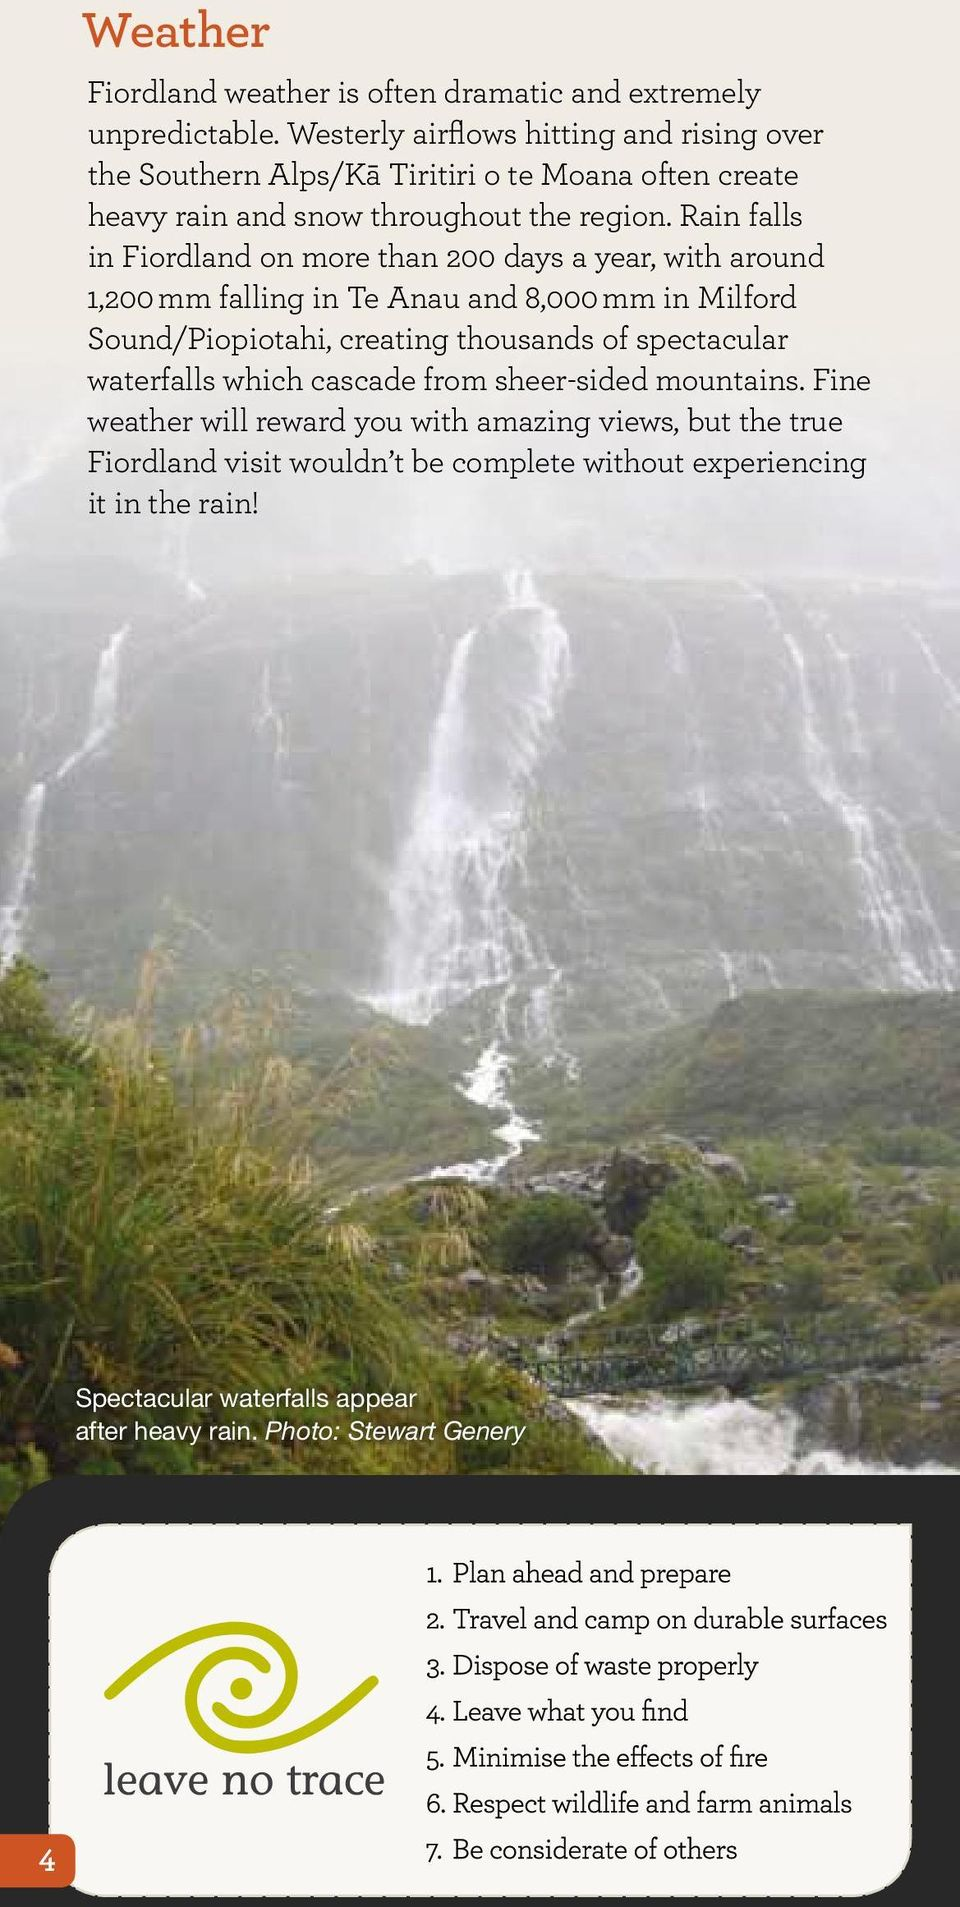 Rain falls in Fiordland on more than 200 days a year, with around 1,200 mm falling in Te Anau and 8,000 mm in Milford Sound/Piopiotahi, creating thousands of